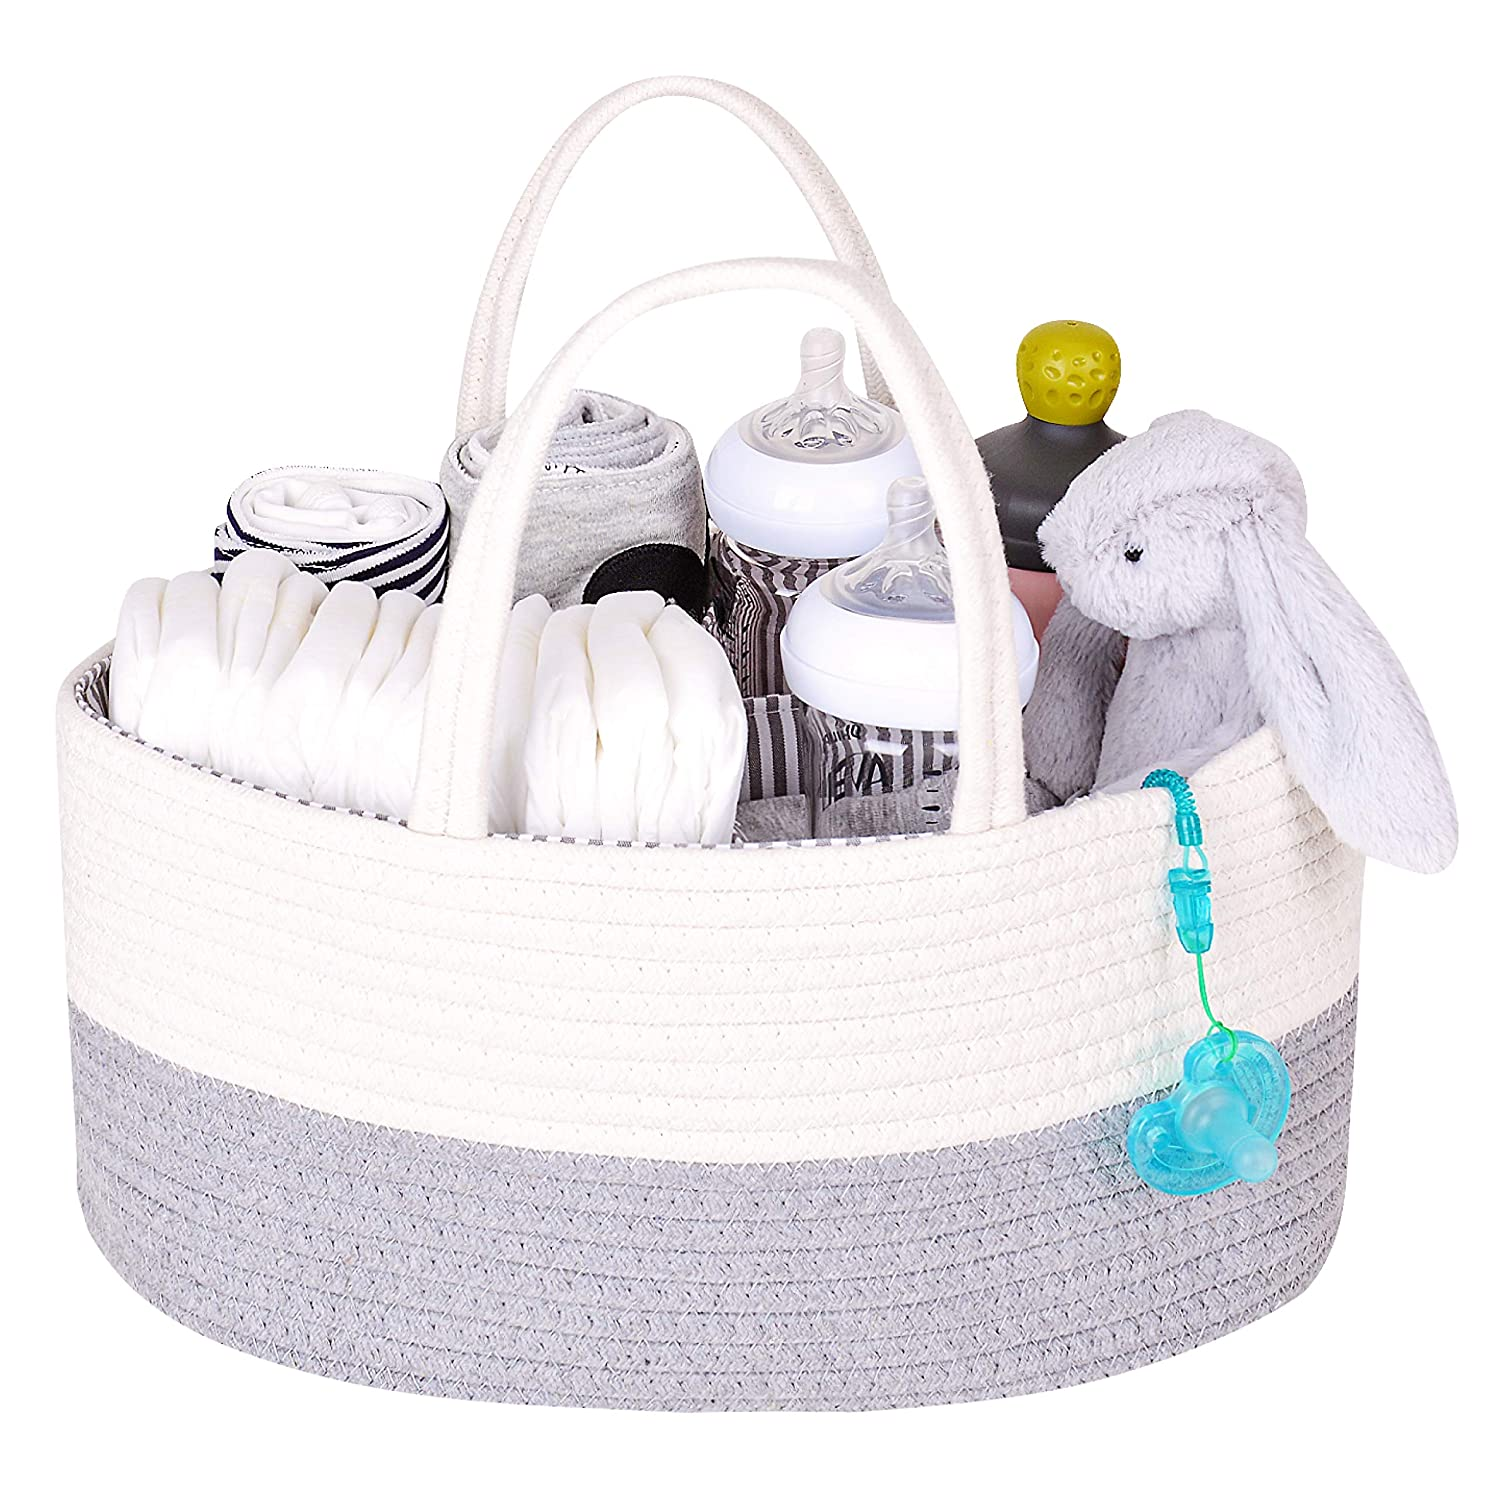 White/&Grey DOKEHOM Large Baby Diaper Caddy Organizer Cotton Rope Woven Multifunctional Nappy Storage Nursery Bin Basket with Removable Compartments